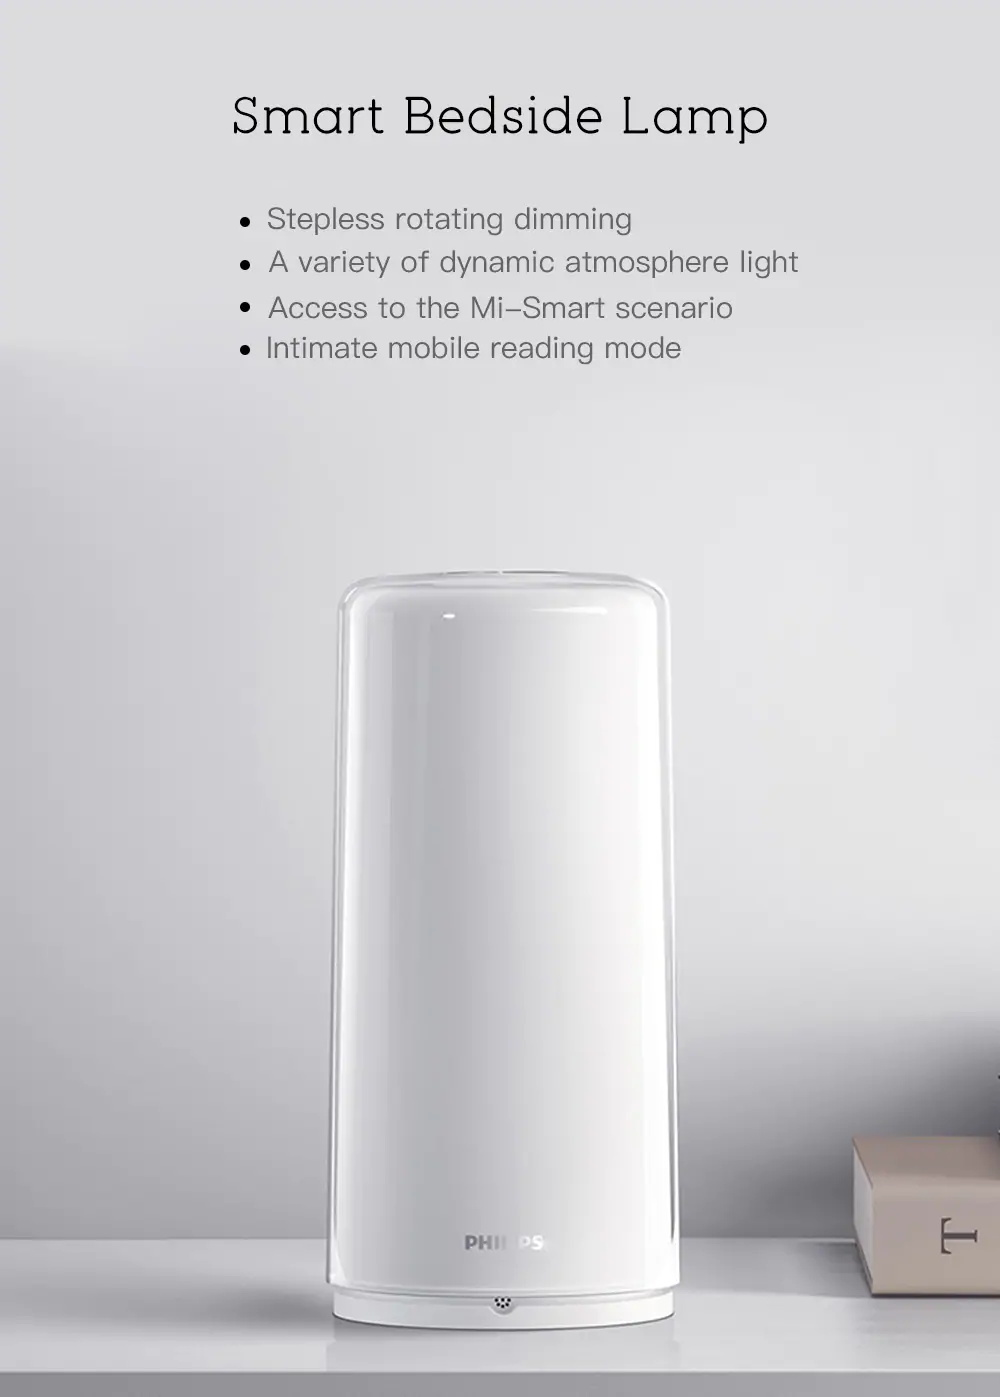 philips smart bedside lamp